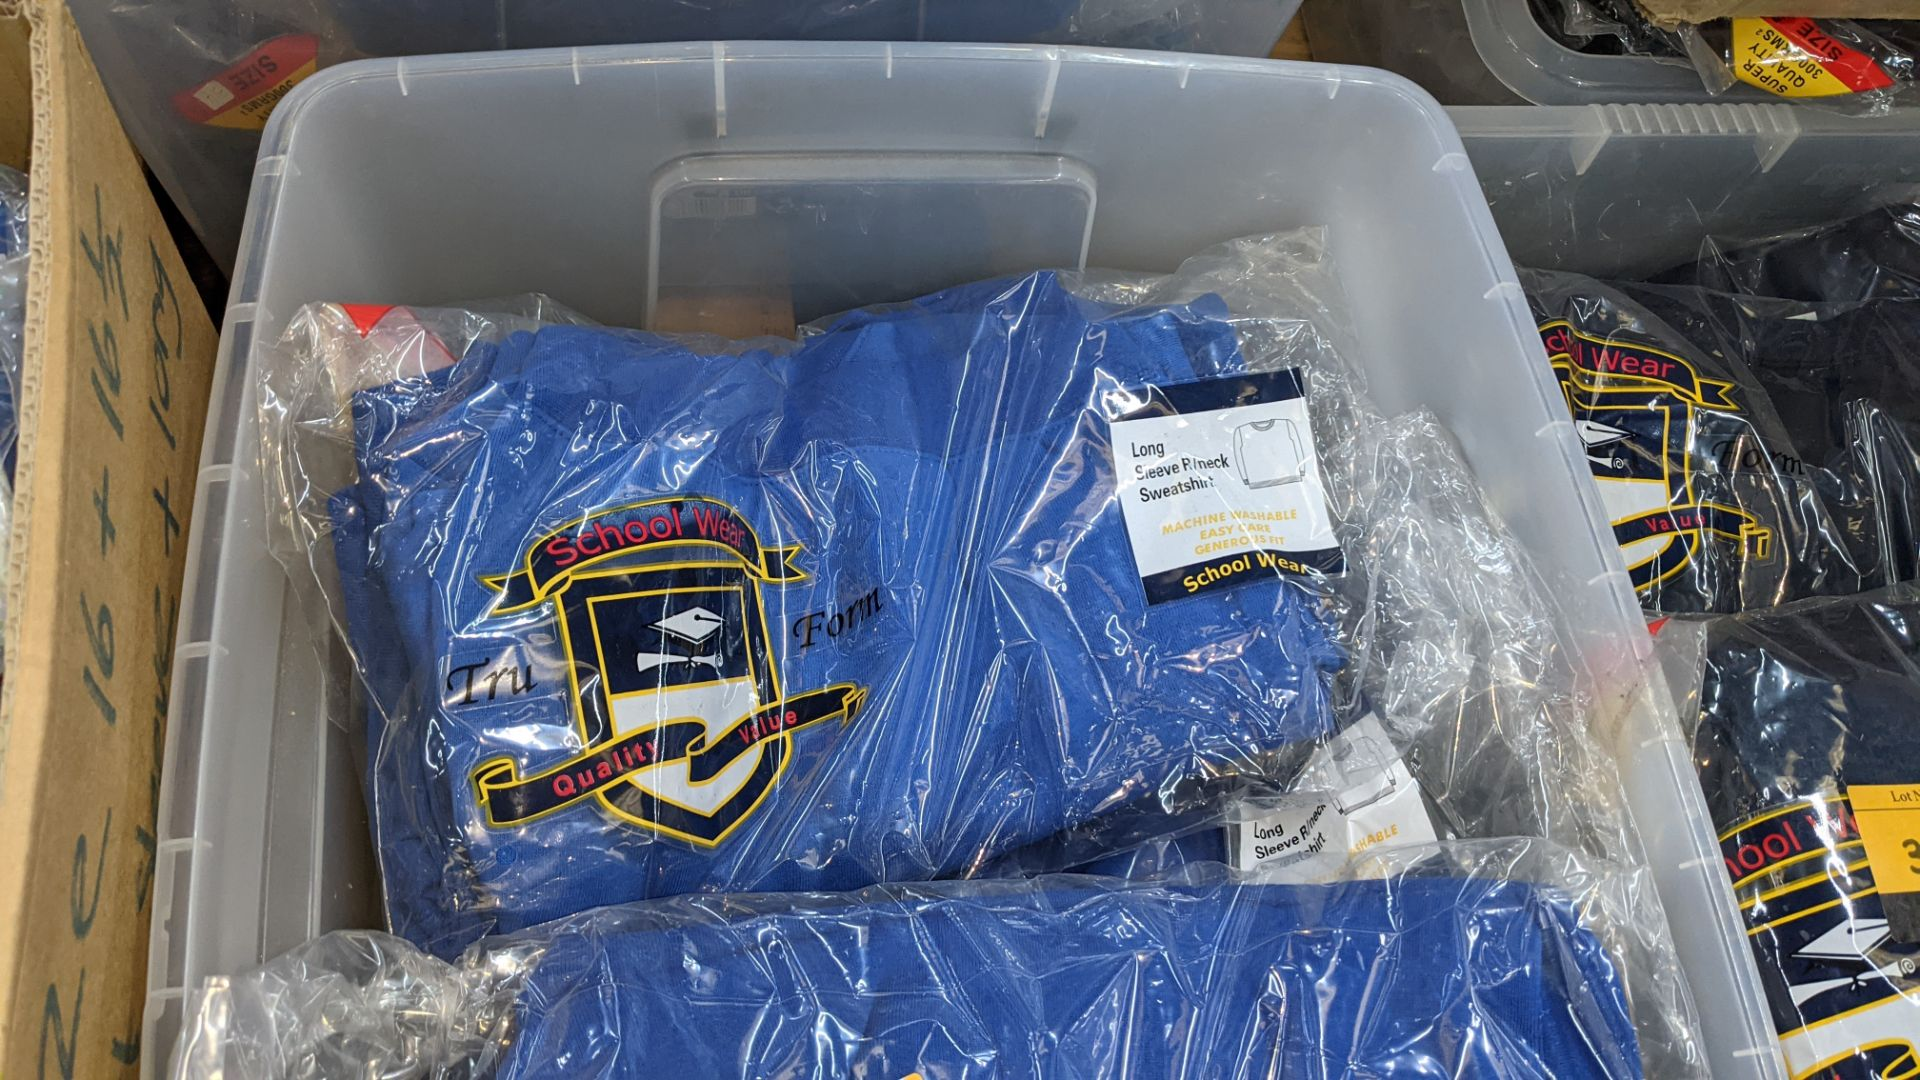 Approx 27 off blue children's sweatshirts & similar - the contents of 1 crate. NB crate excluded - Image 4 of 4